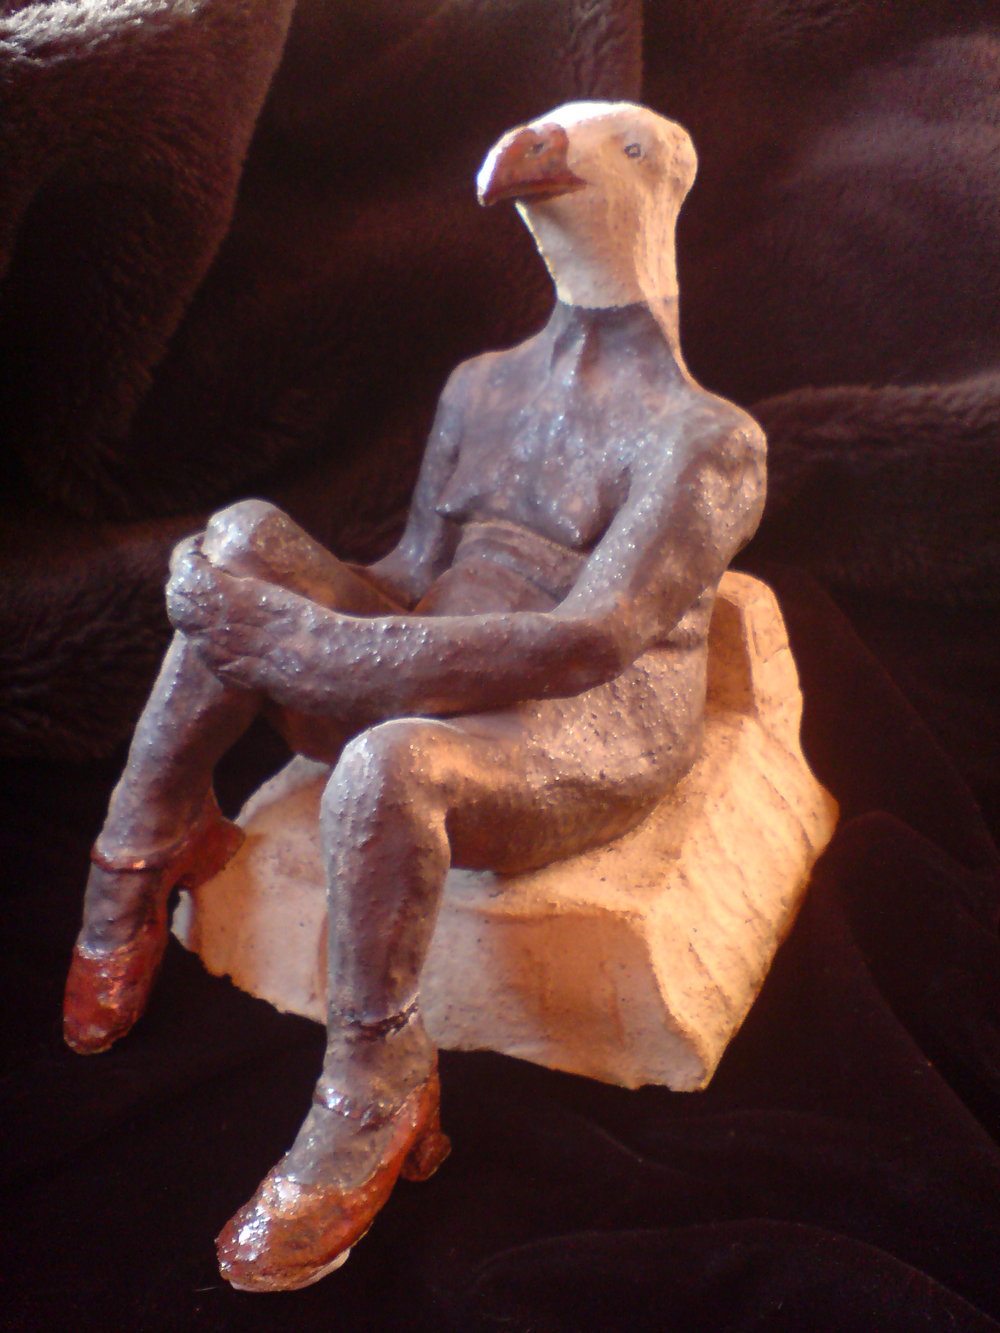 'Eagle-headed lady in Mary Jane Shoes' by CJ Munn (sold)